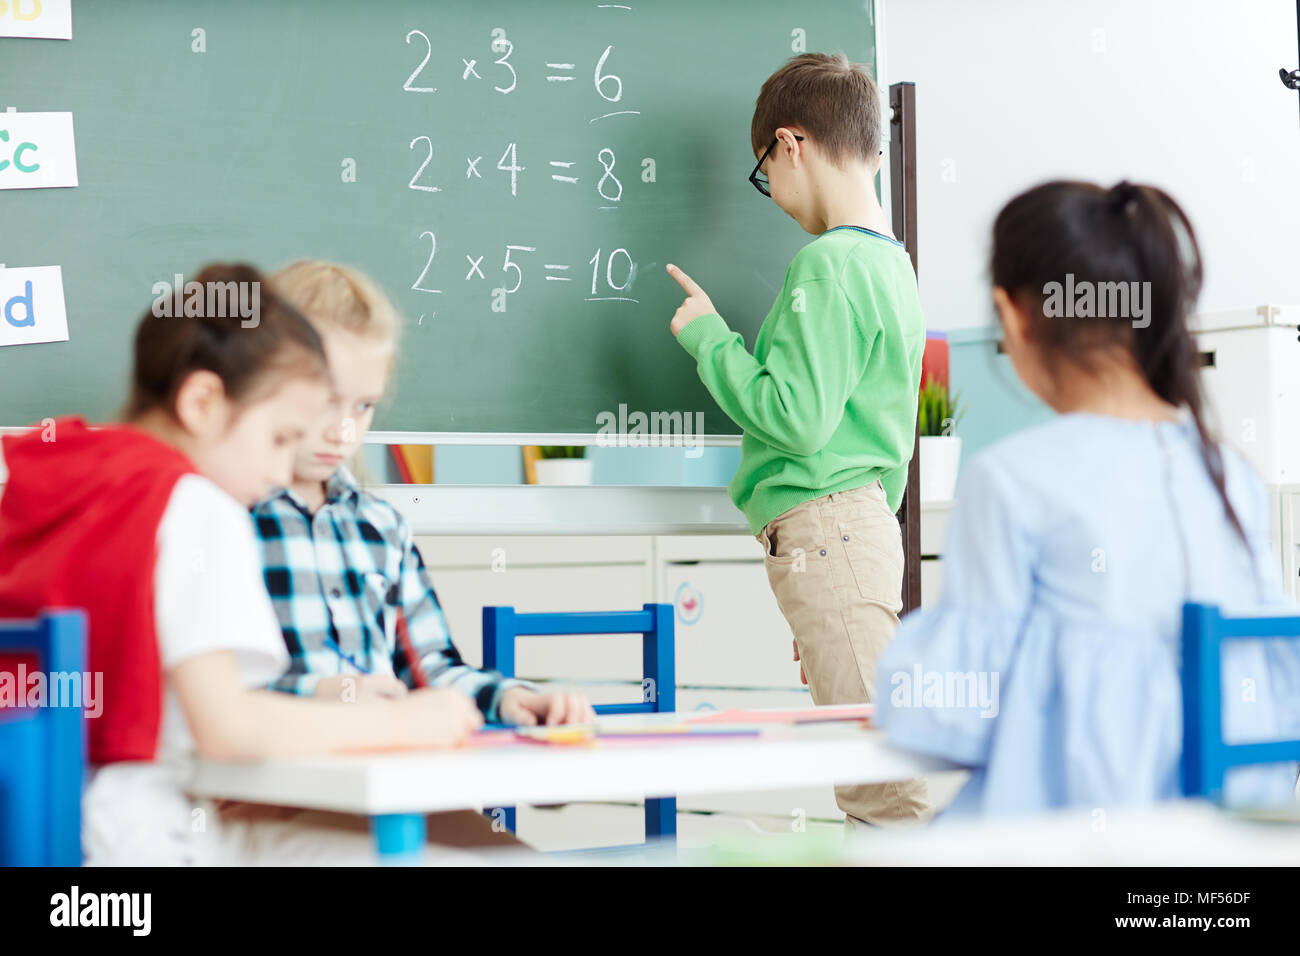 Blackboard Sums Stock Photos & Blackboard Sums Stock Images - Alamy